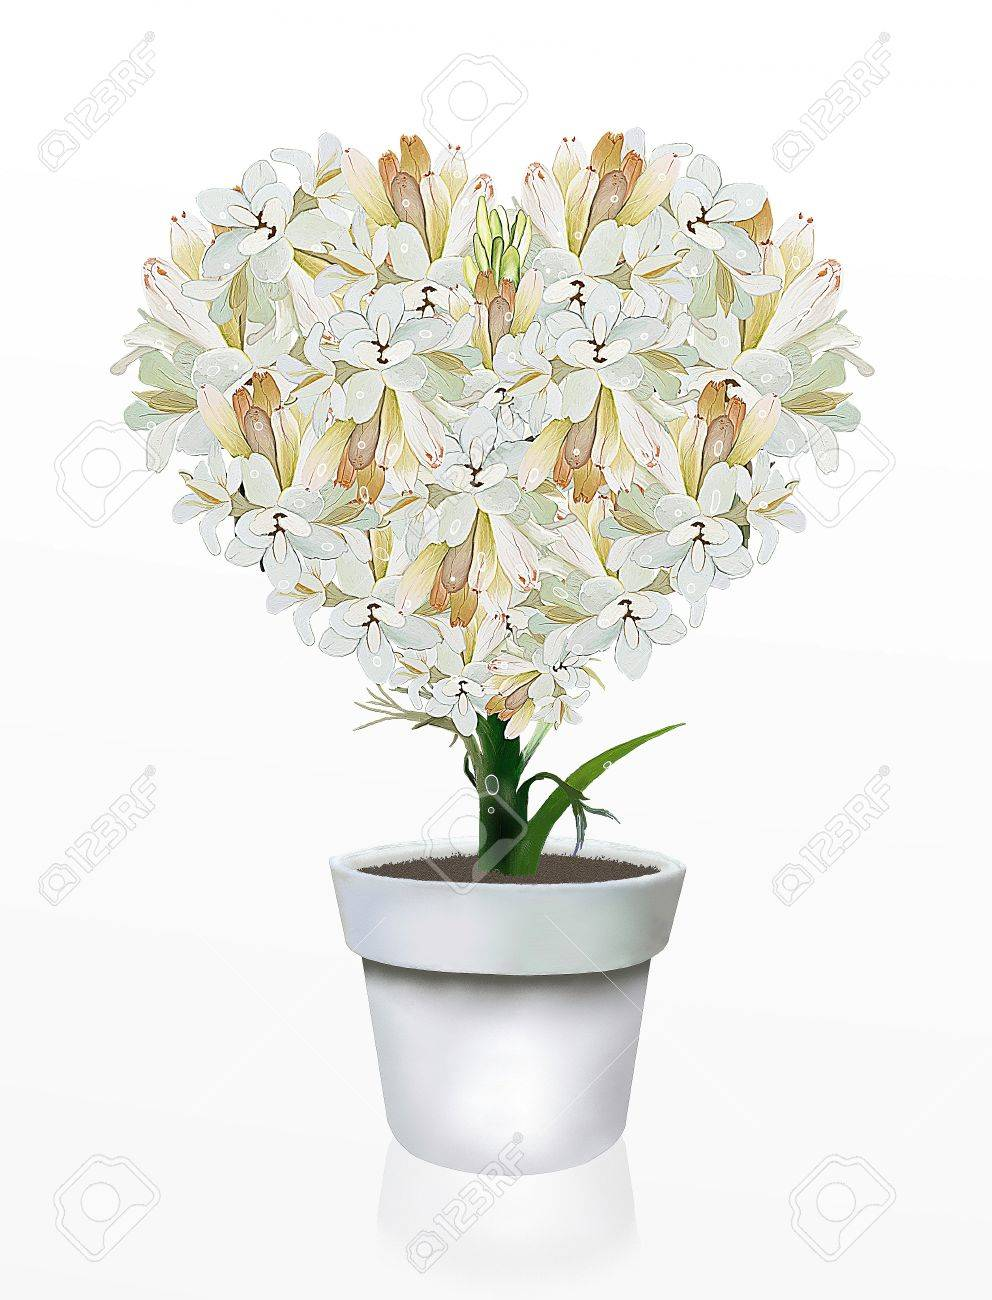 A Beautiful Heart Shape of White Tuberose Flowers in Flowerpot, on A White Background Stock Photo - 14730580